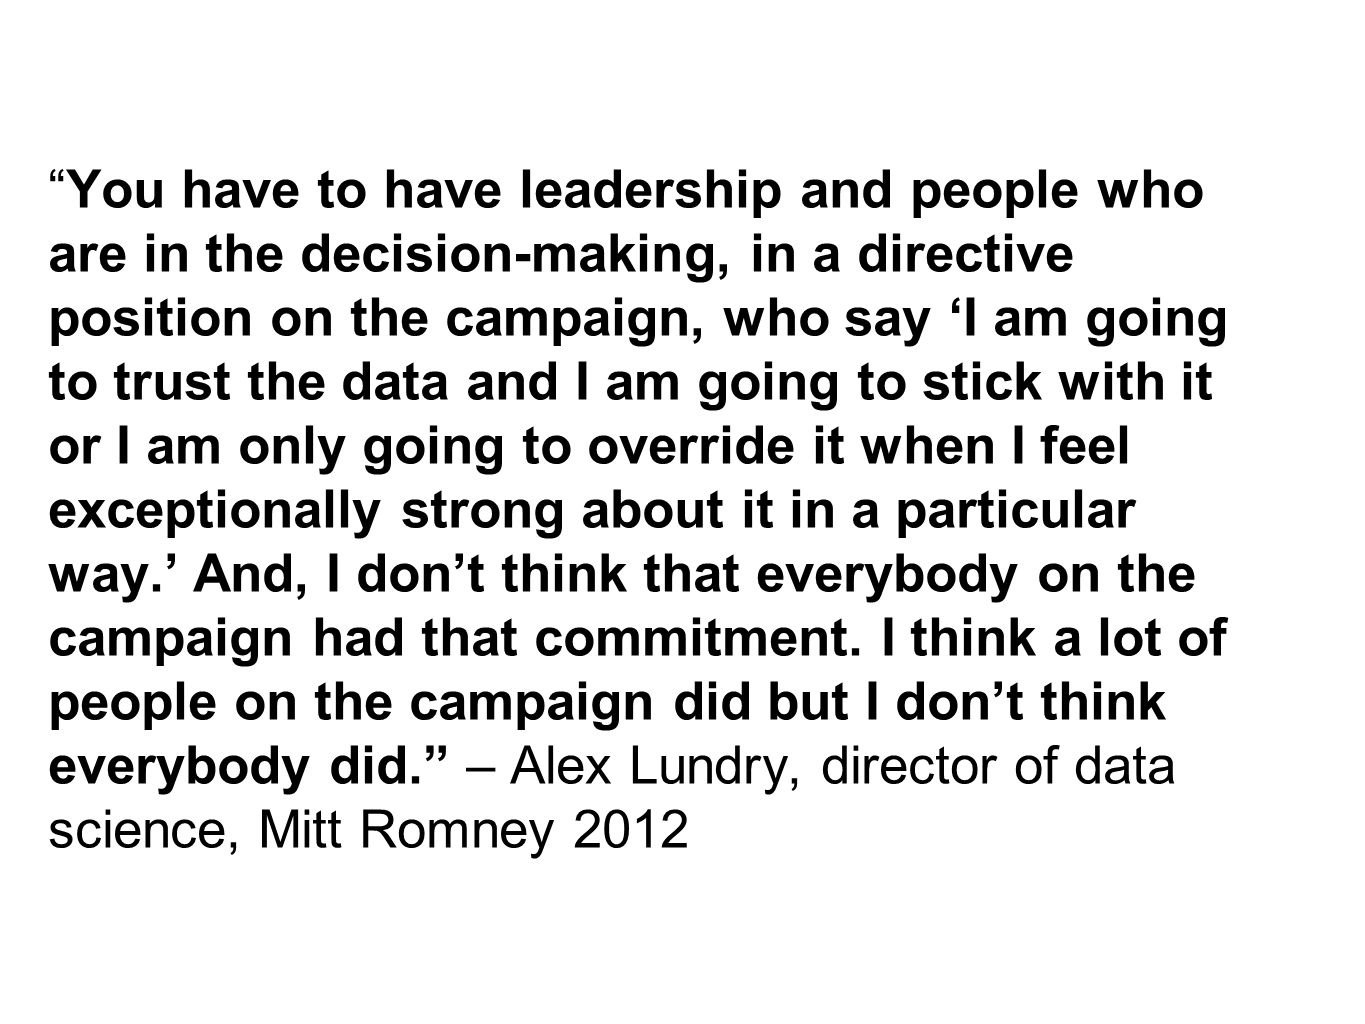 You have to have leadership and people who are in the decision-making, in a directive position on the campaign, who say 'I am going to trust the data and I am going to stick with it or I am only going to override it when I feel exceptionally strong about it in a particular way.' And, I don't think that everybody on the campaign had that commitment.